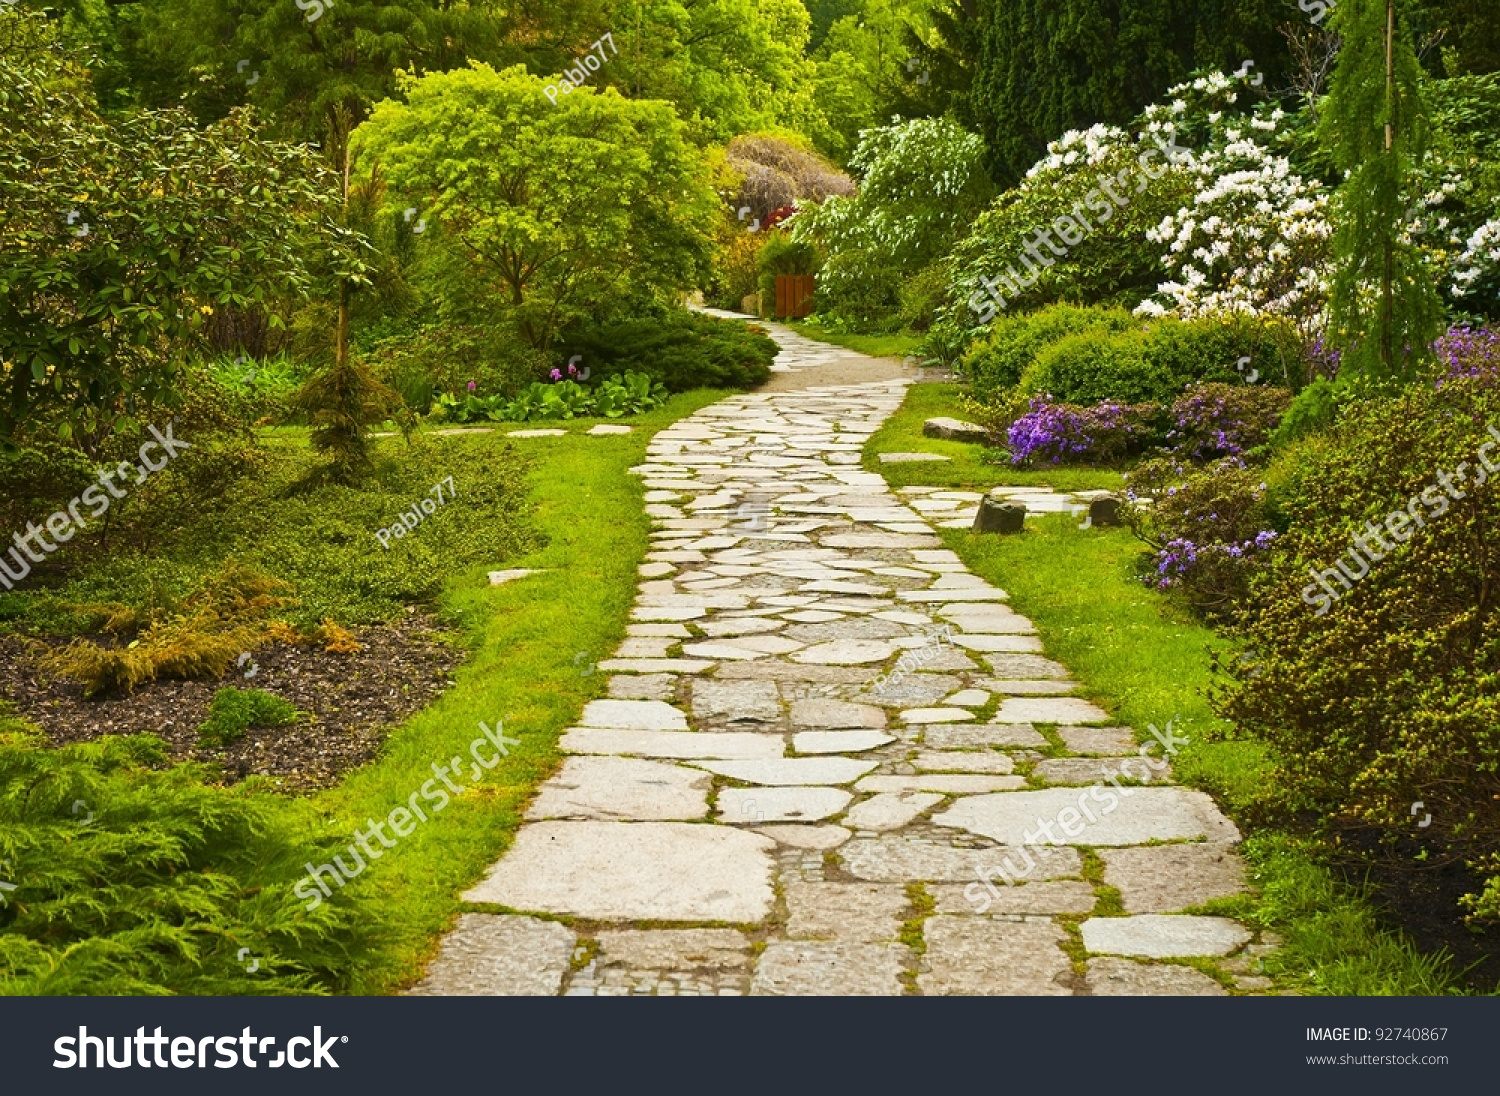 Path in japanese garden stock photo 92740867 shutterstock Pathway images